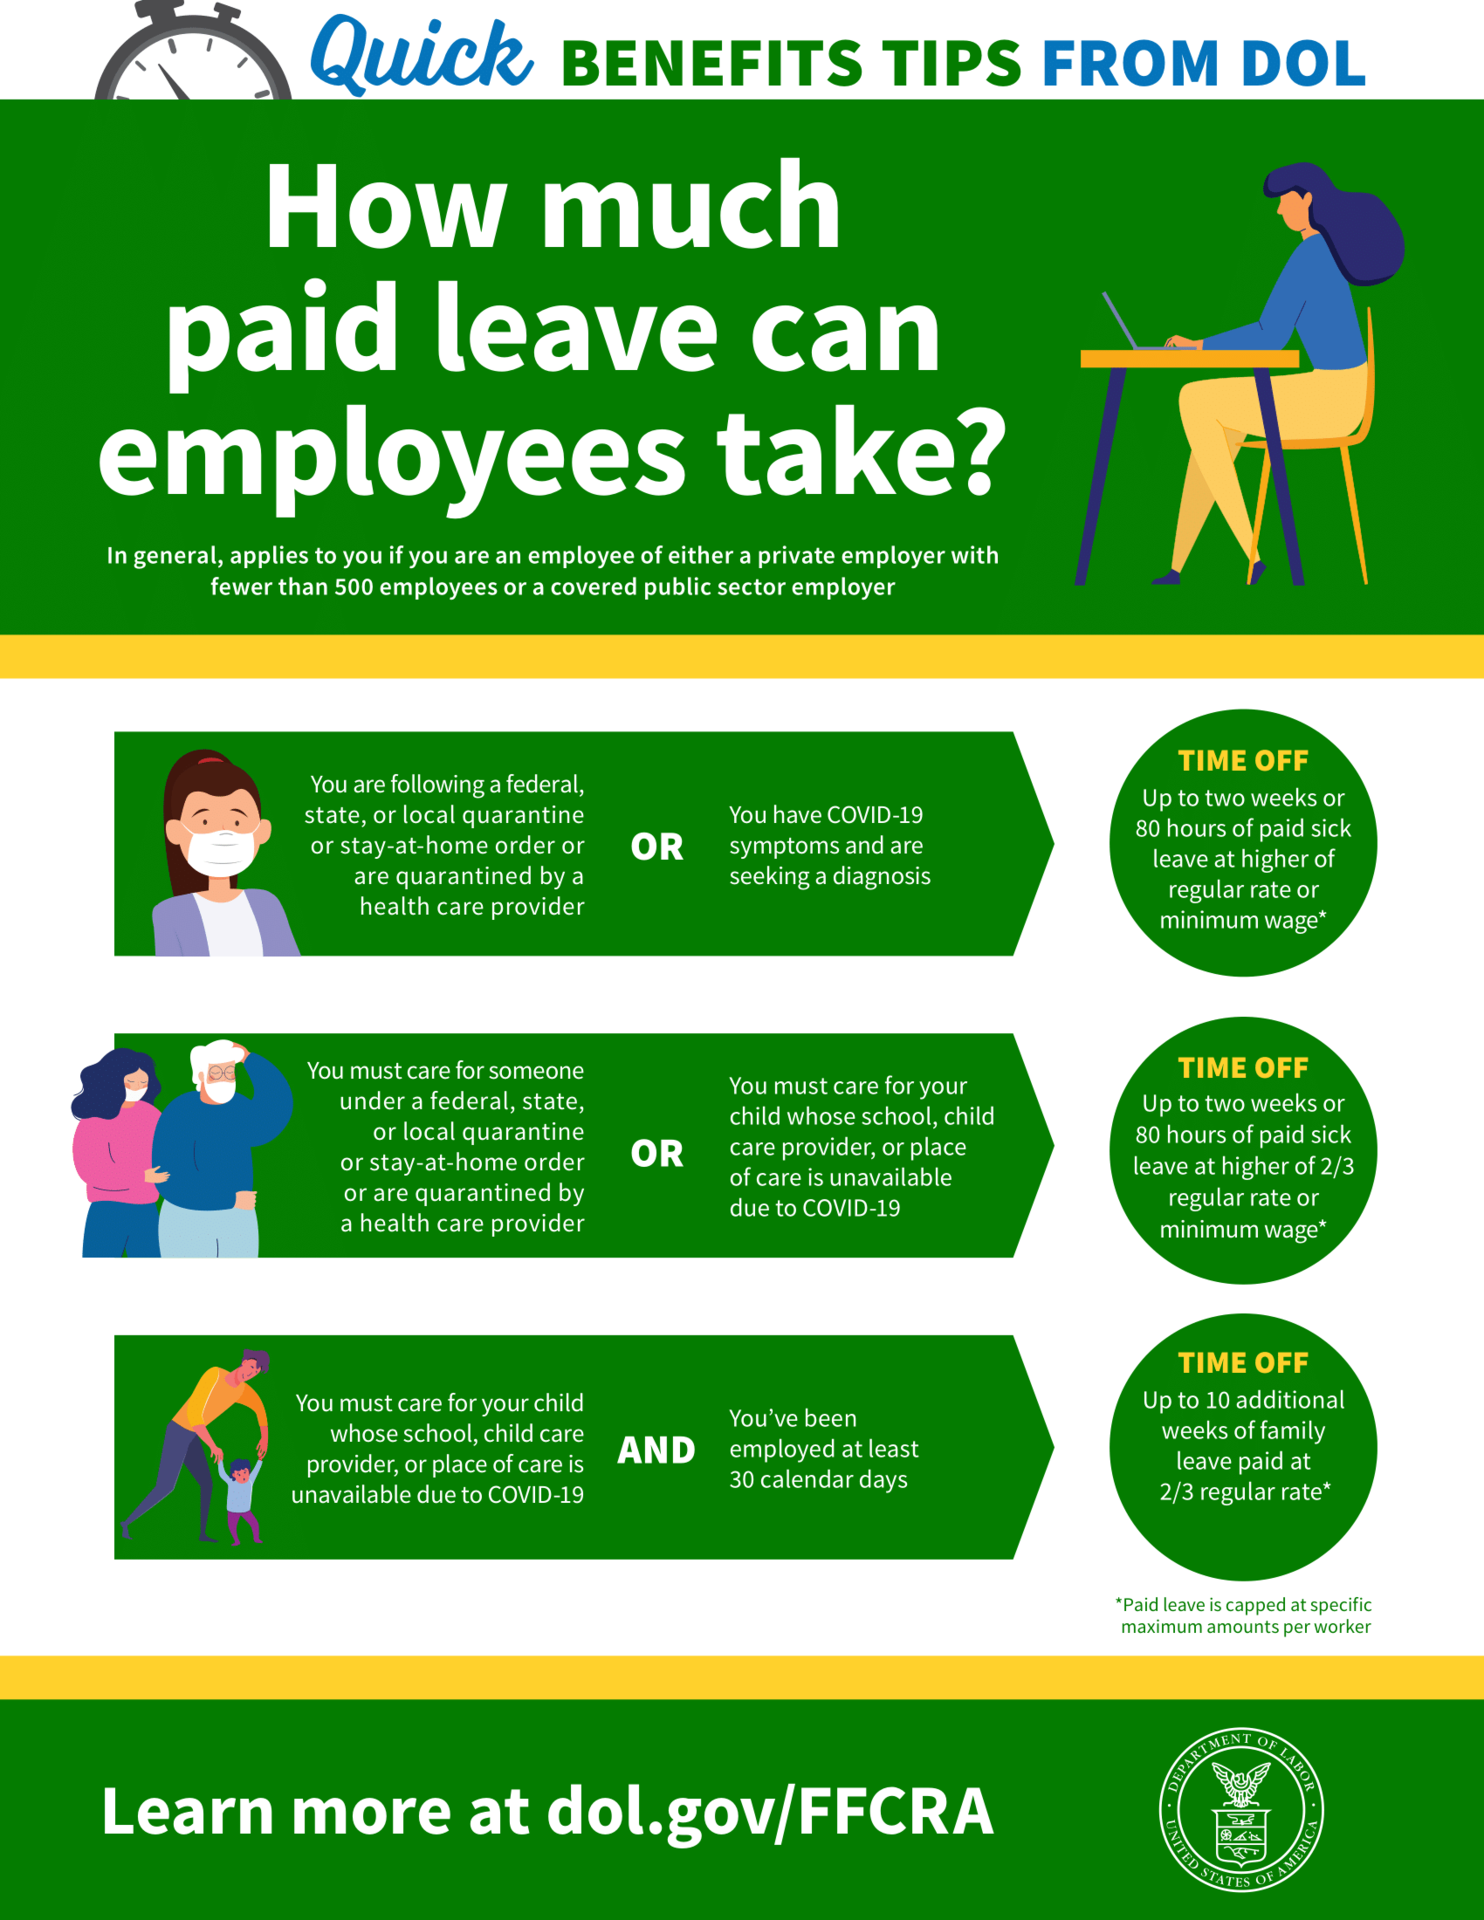 Quick Benefits tips from dol. How much paid leave can employees take?